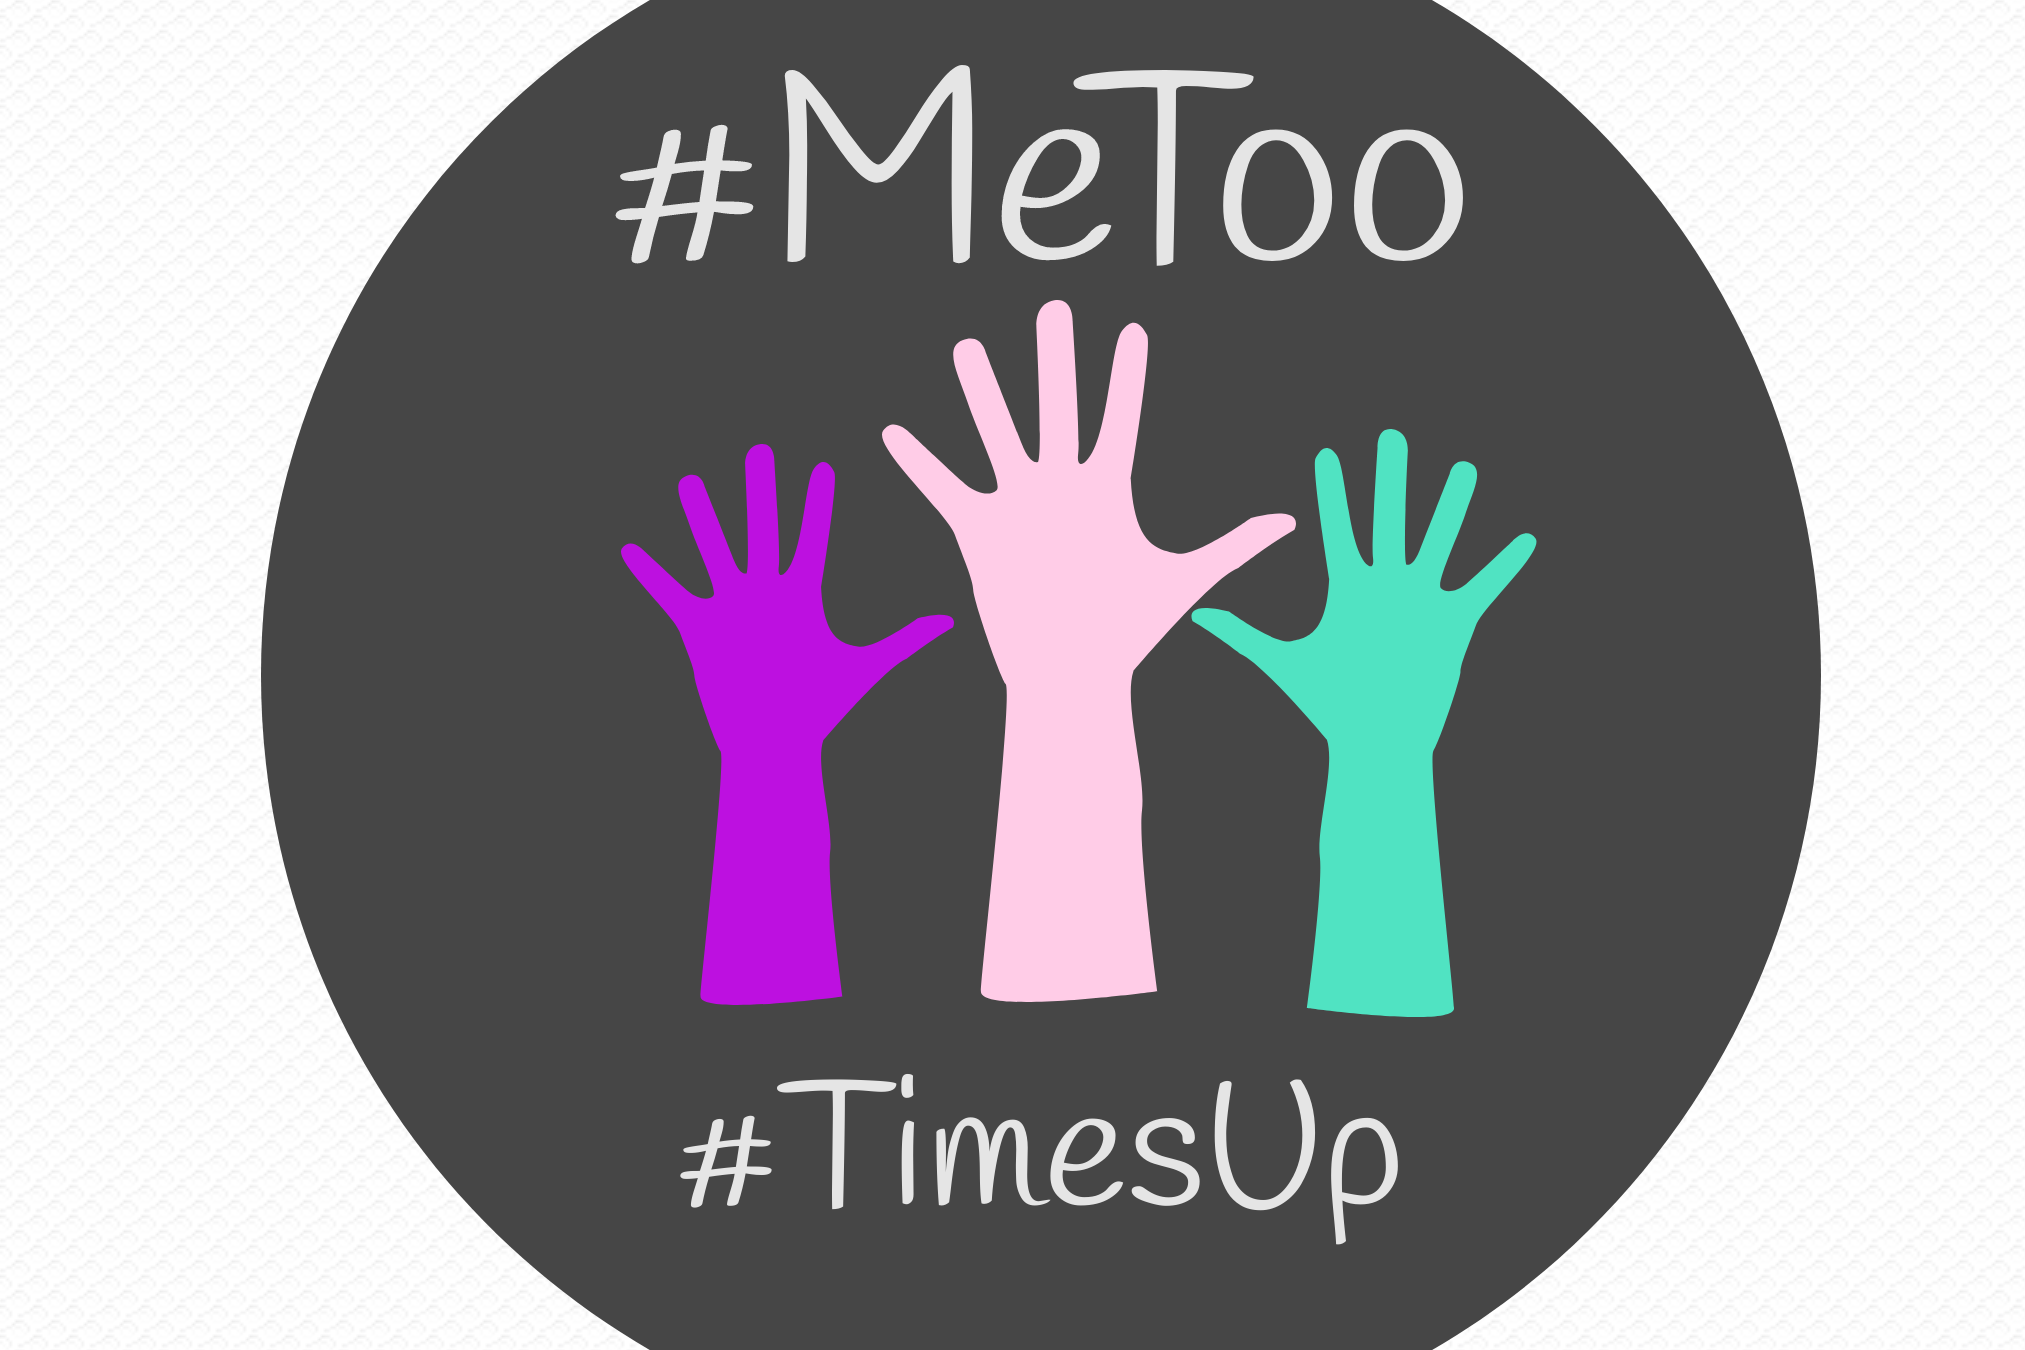 #MeToo And #TimesUp: Social Media And The Law Converge